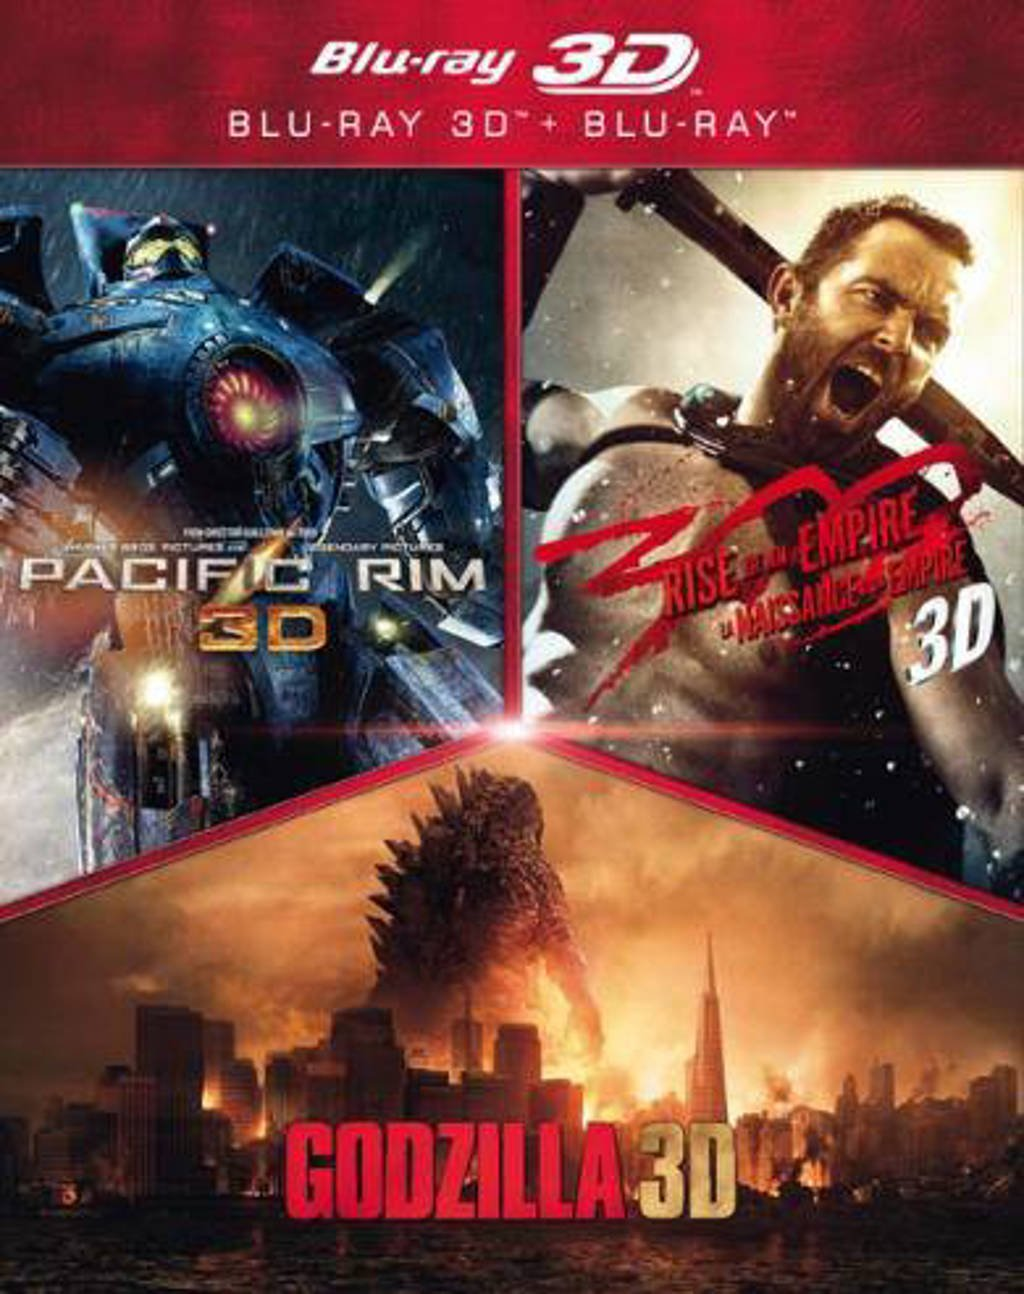 Action pack (3D) (Blu-ray)